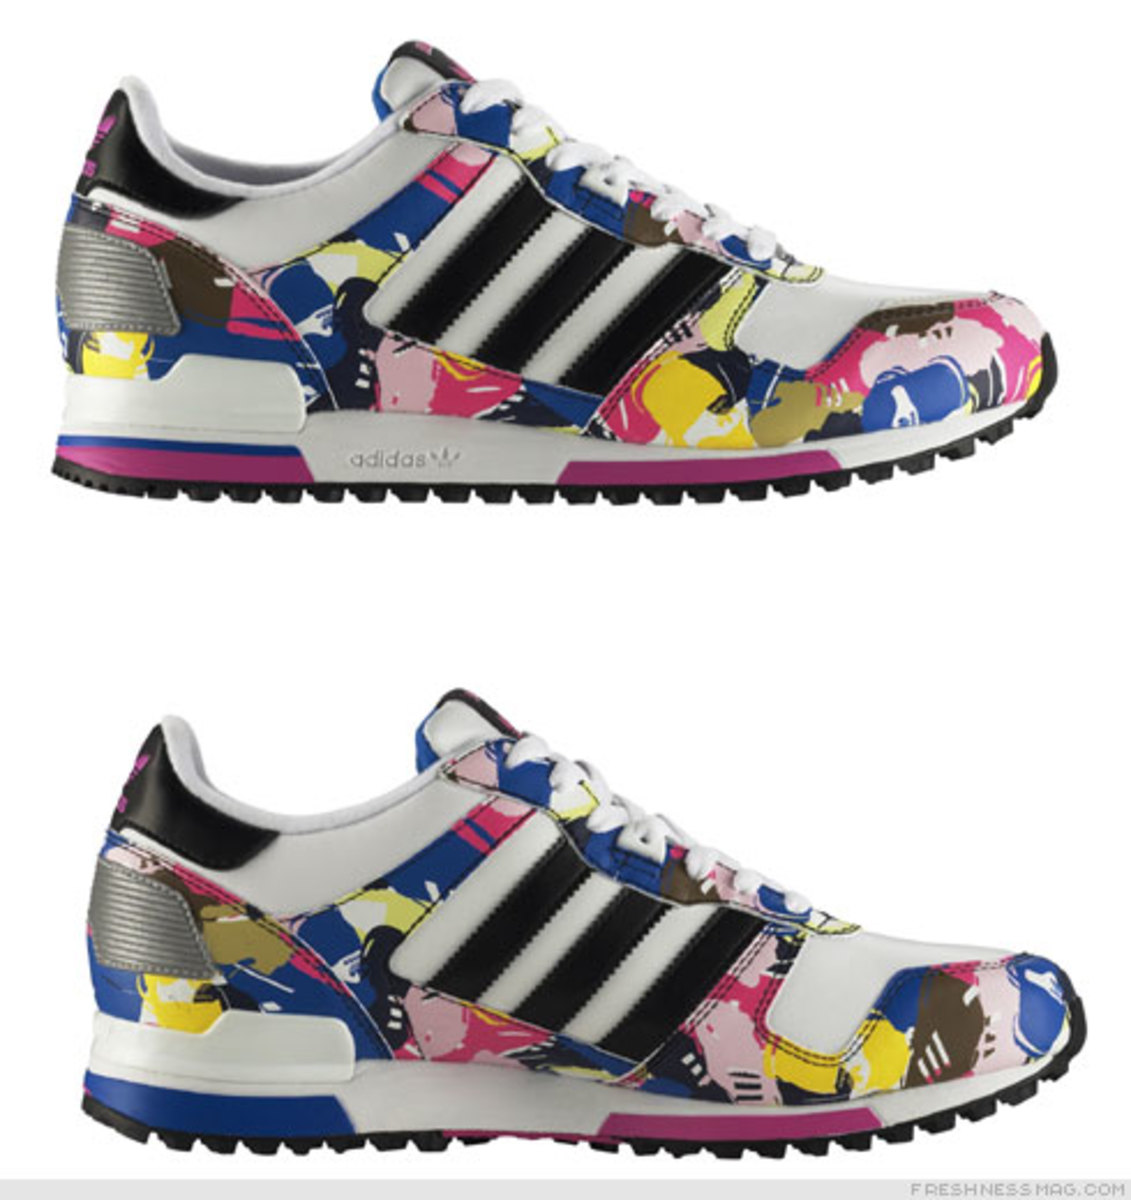 Freshness Feature: Adidas ZX Family - Camo Pack - 1